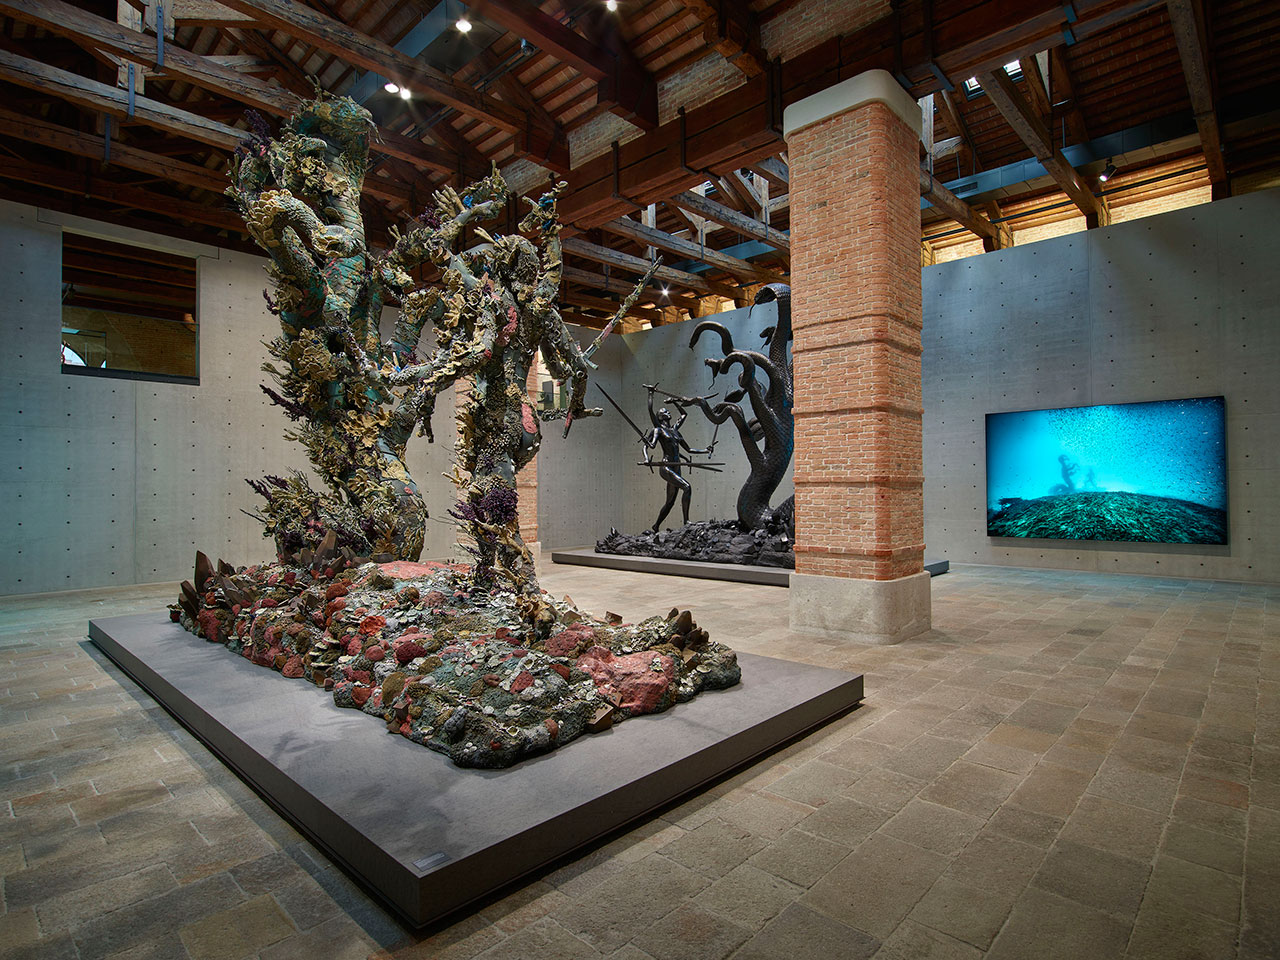 From Punta della Dogana, Room 11: (left to right) Damien Hirst, Hydra and Kali (two versions), Hydra and Kali Beneath the Waves (photography Christoph Gerigk). Photographed by Prudence Cuming Associates © Damien Hirst and Science Ltd. All rights reserved, DACS/SIAE 2017.